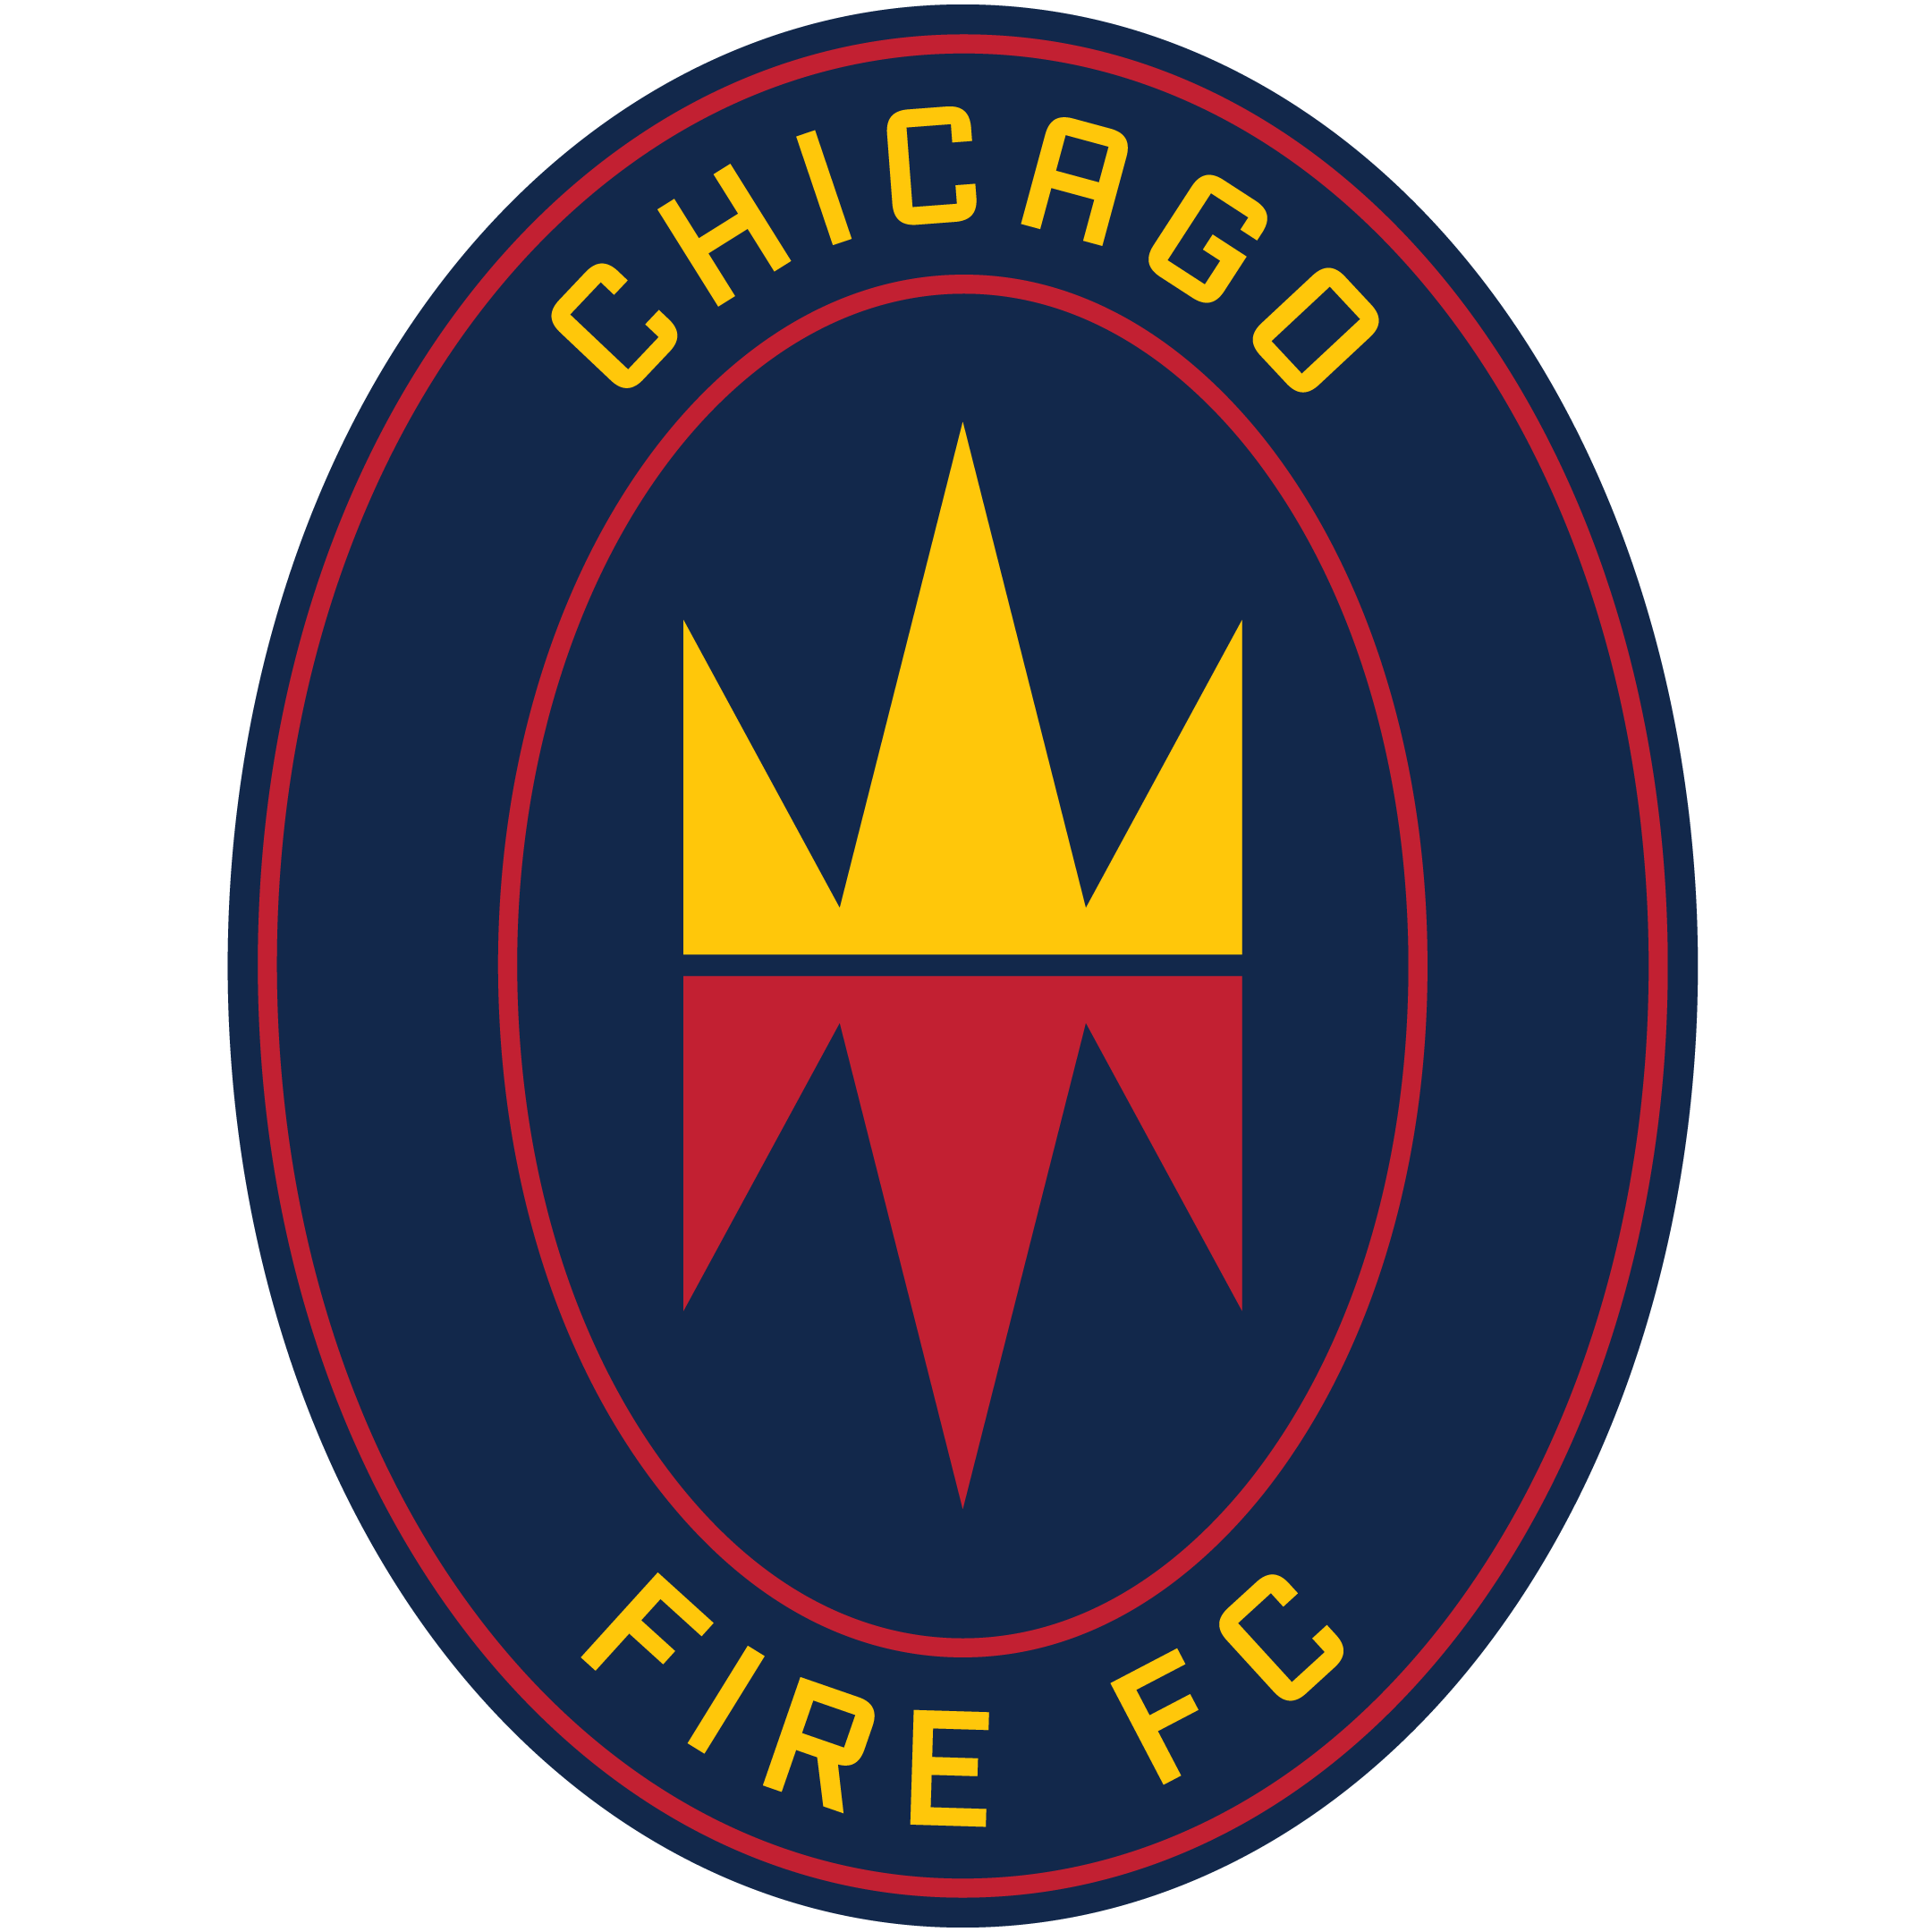 Single Match Tickets in 2020 Chicago fire, Chicago